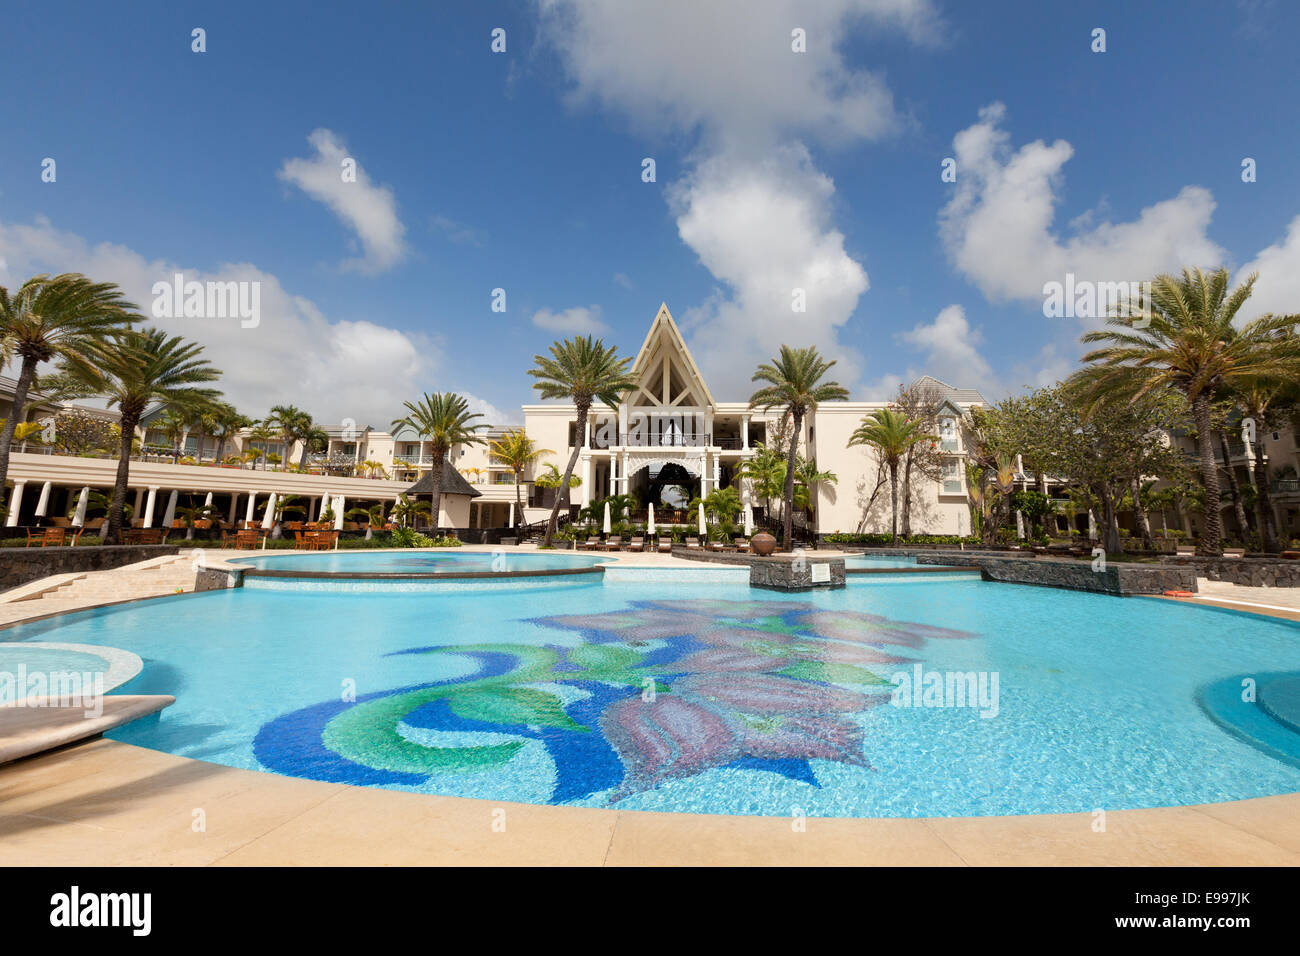 The Luxury 5 Star Residence Hotel And Its Swimming Pool Belle Mare Stock Photo Royalty Free